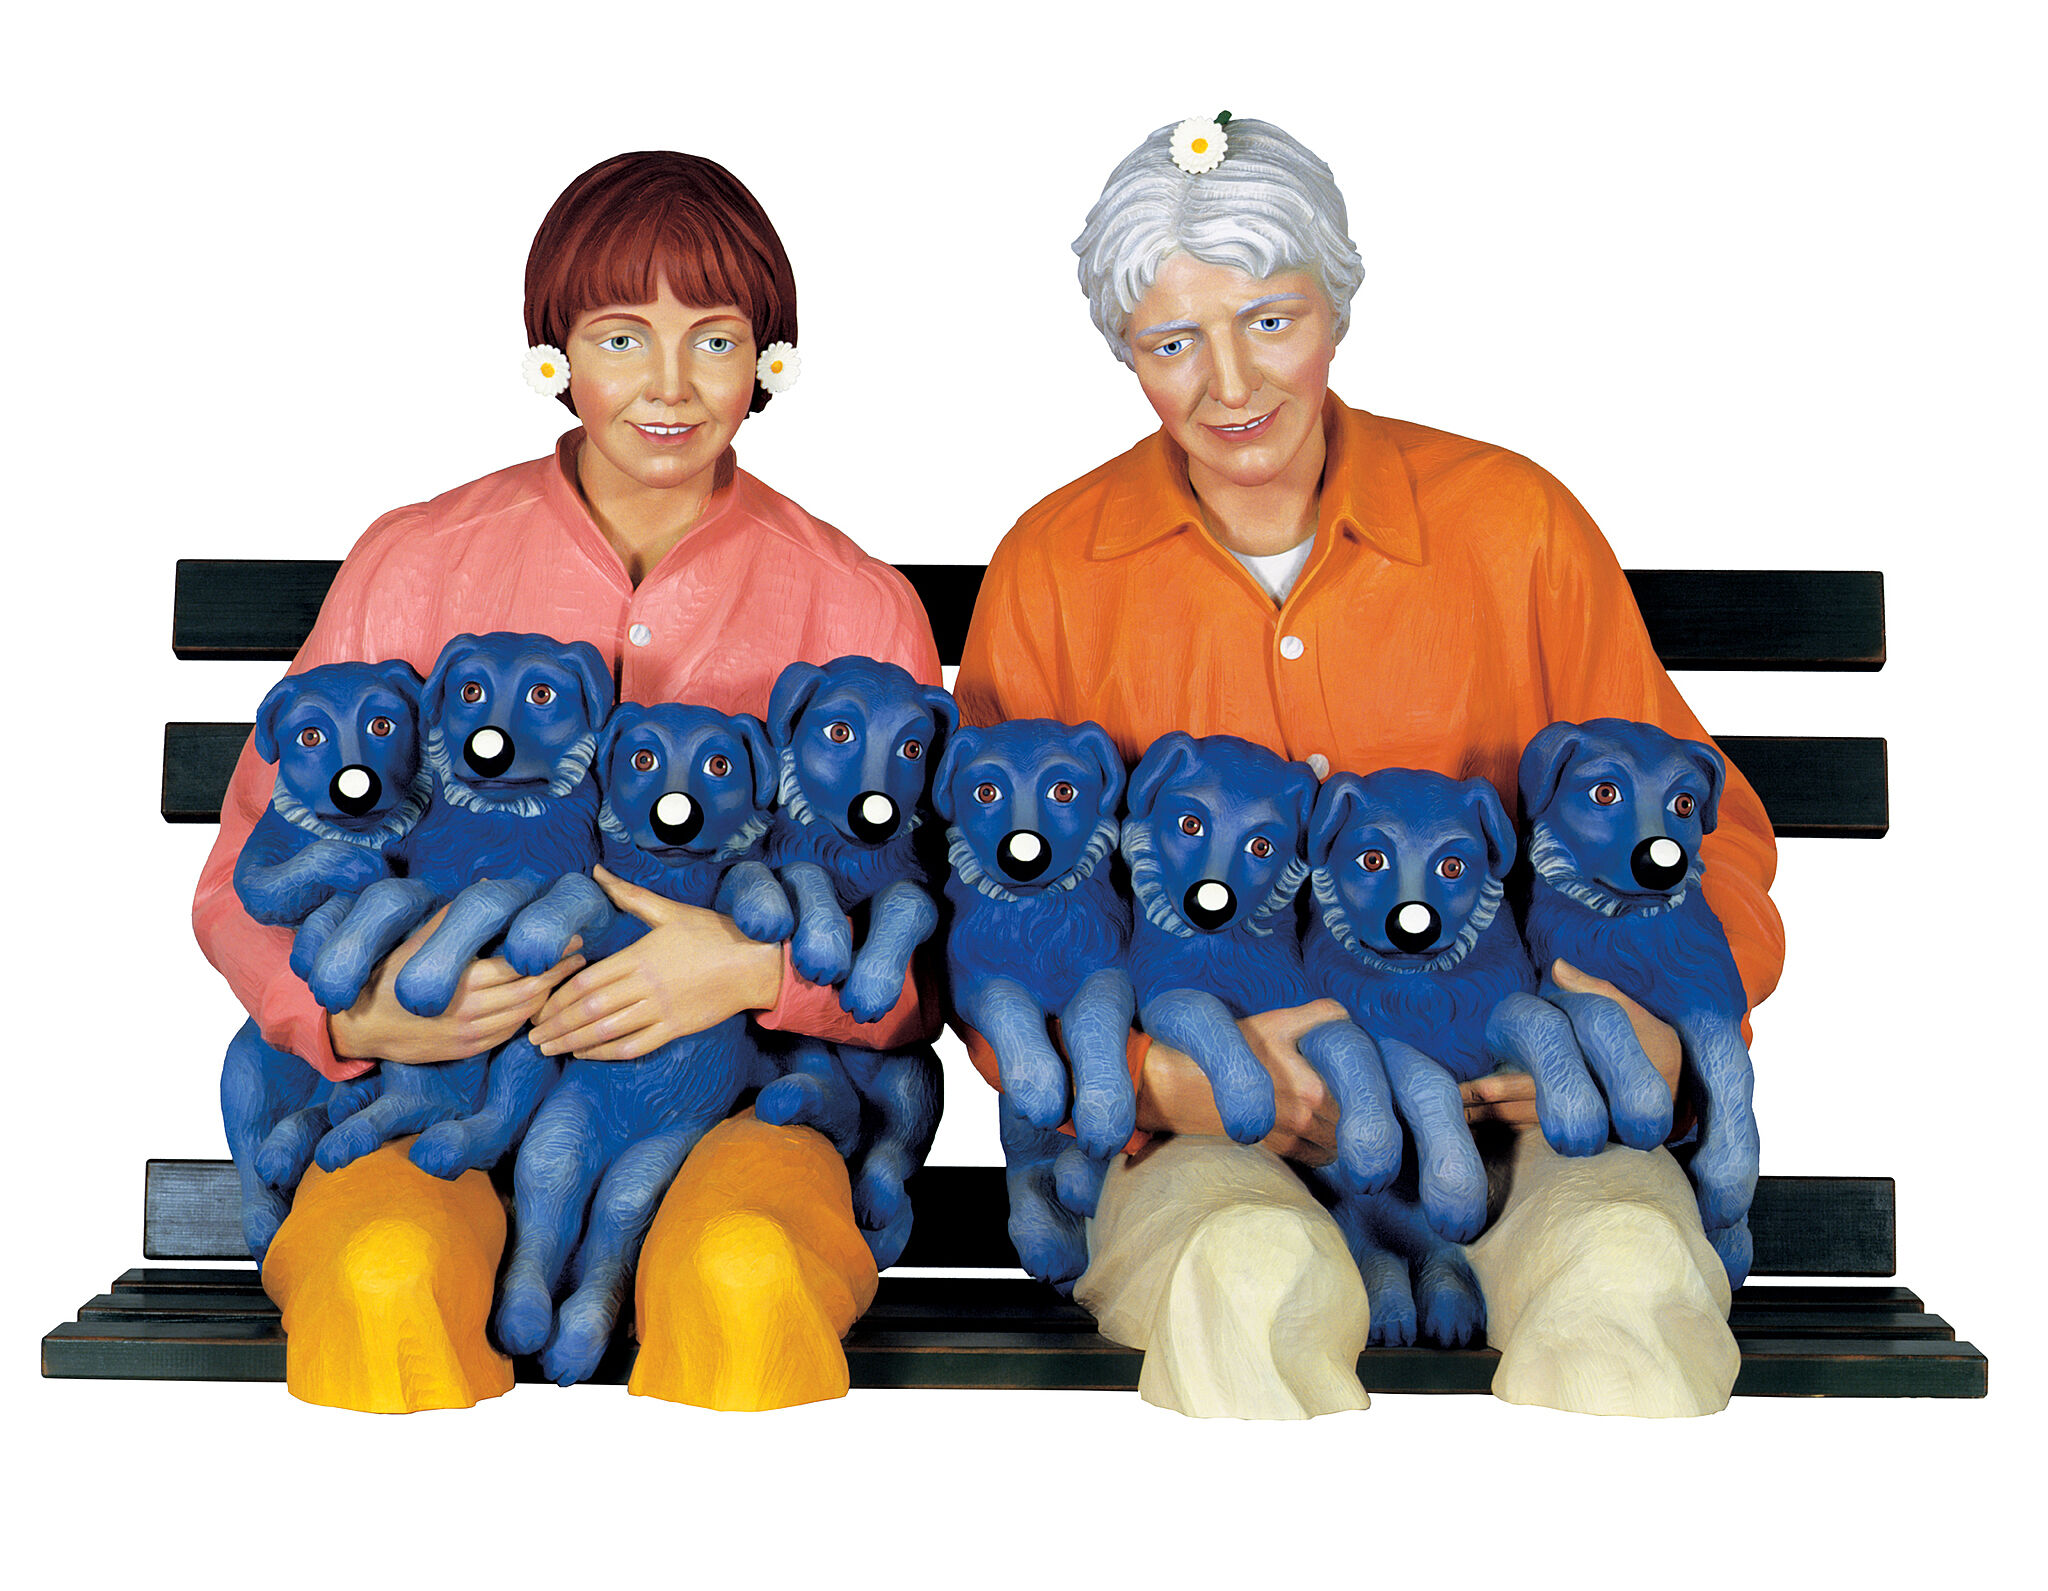 A sculpture of two people sitting on a bench holding 8 puppies.